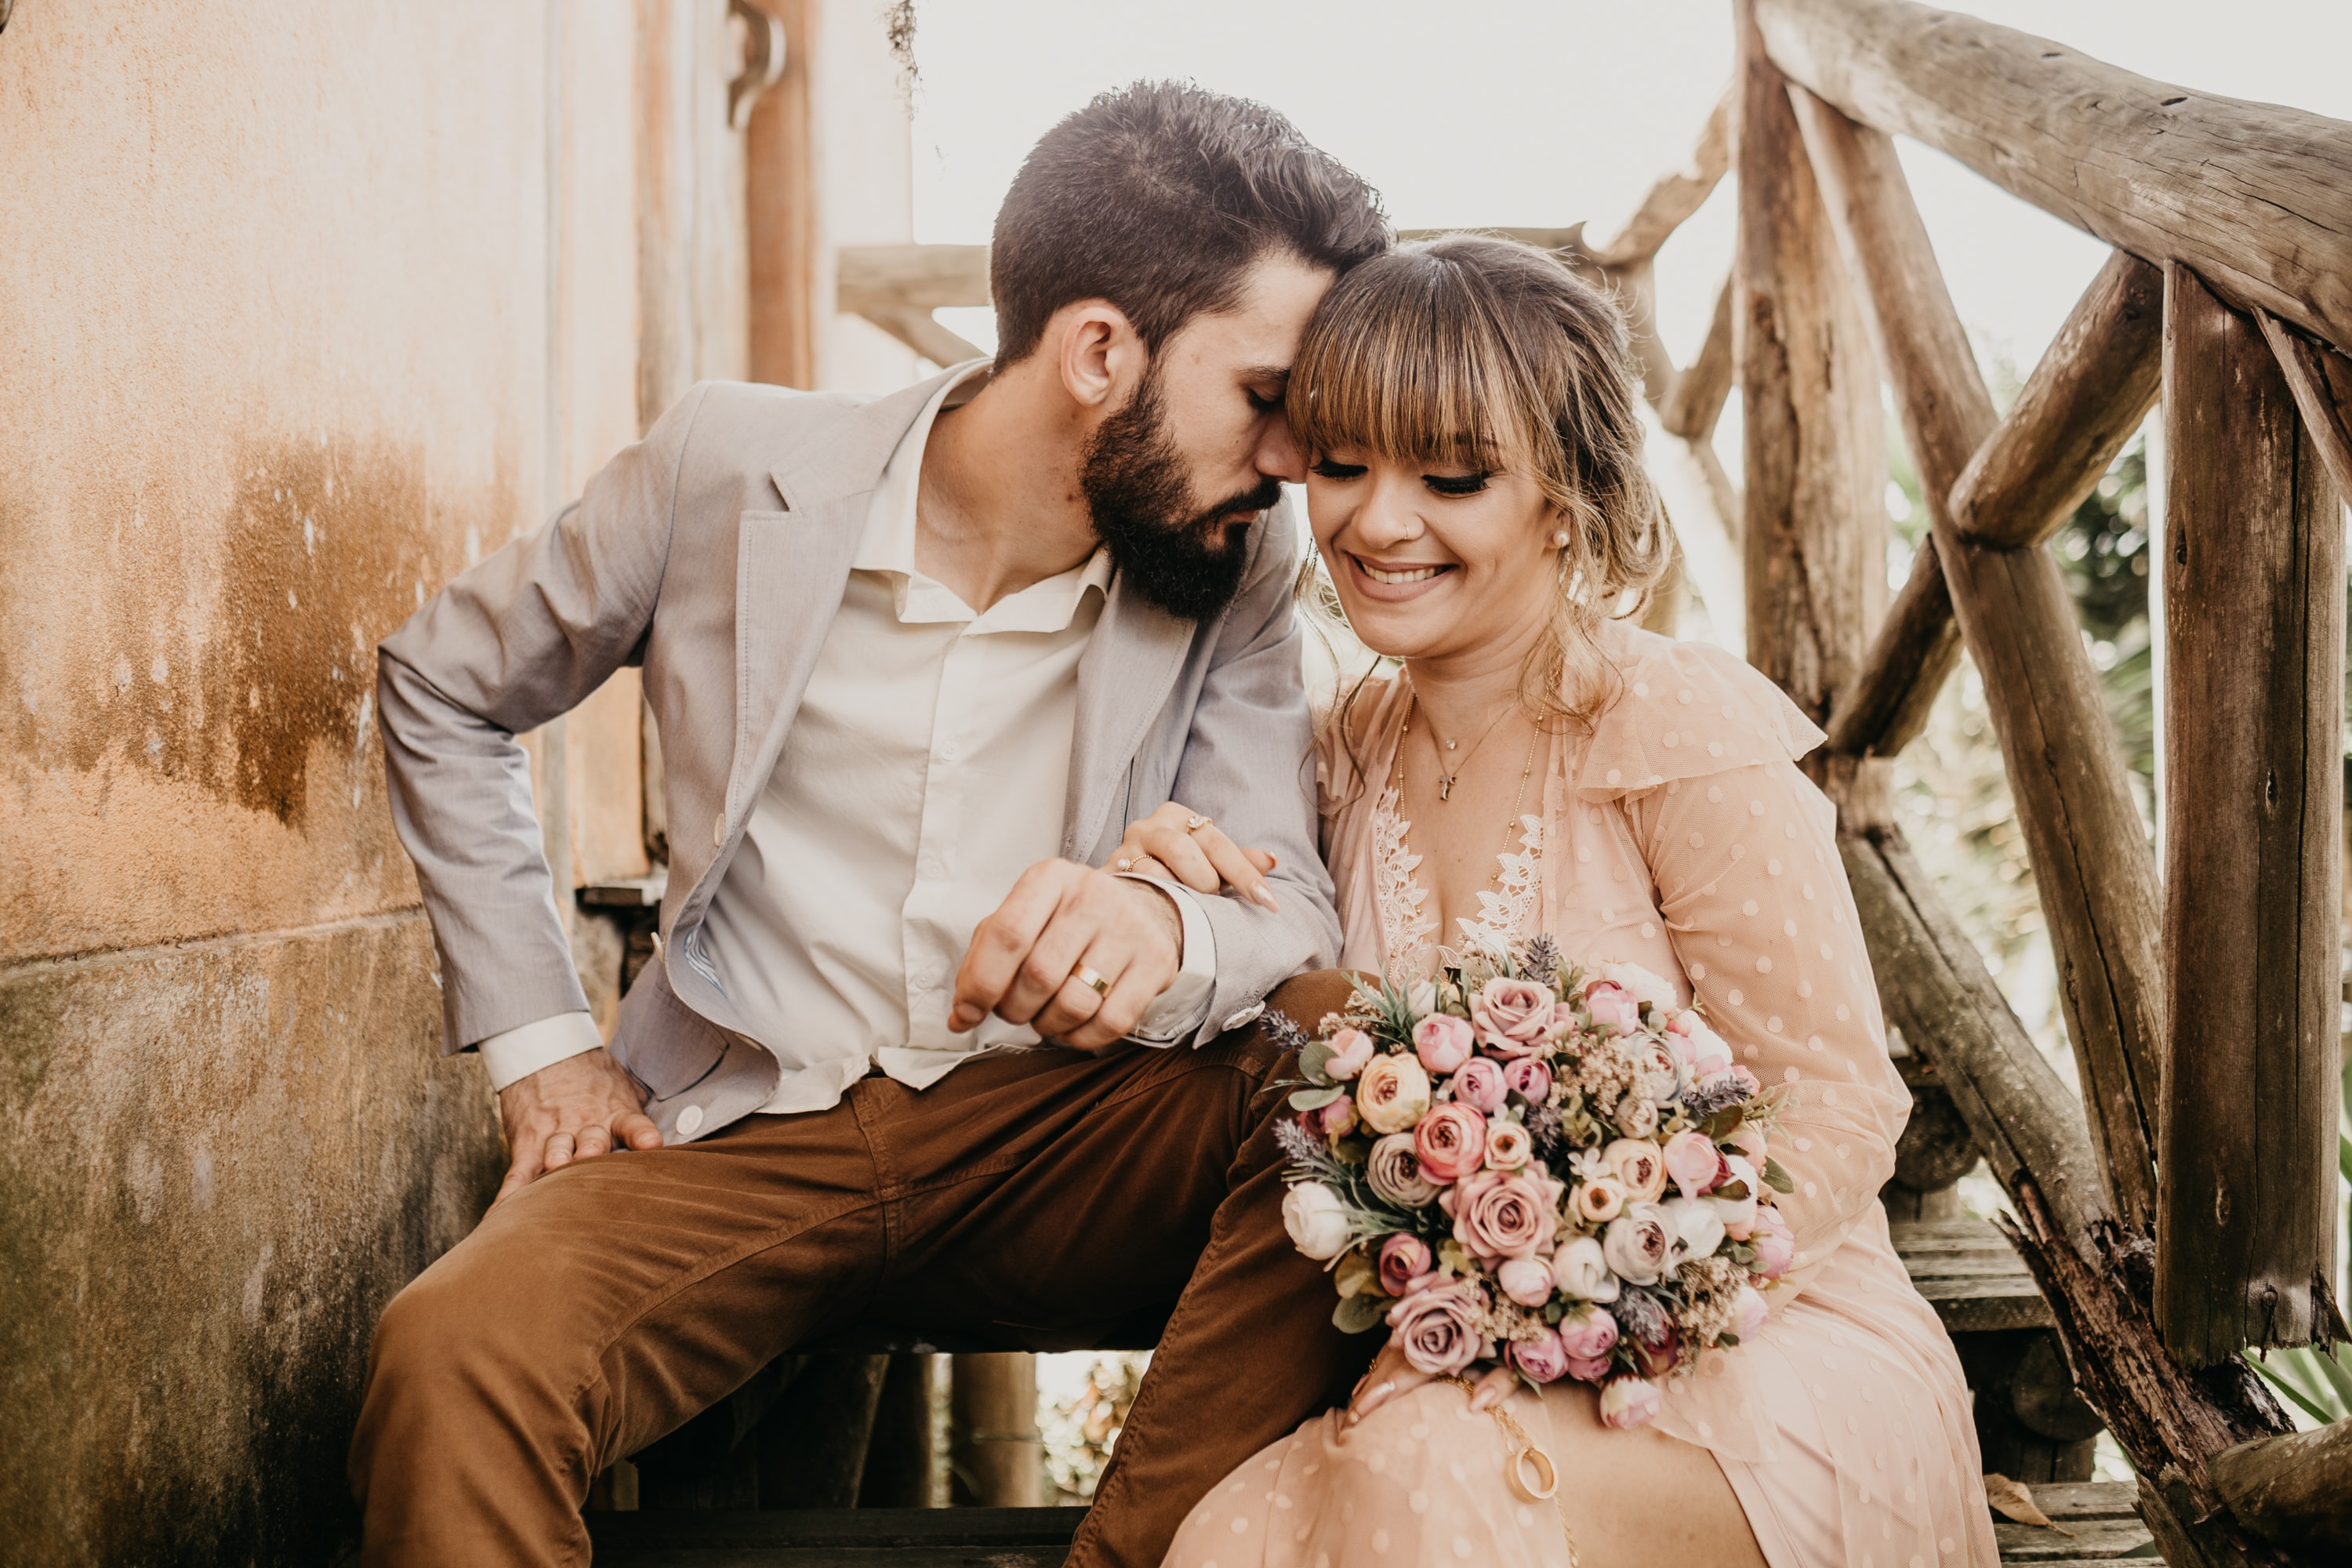 Bride of the Year: Bridal Trends of 2020